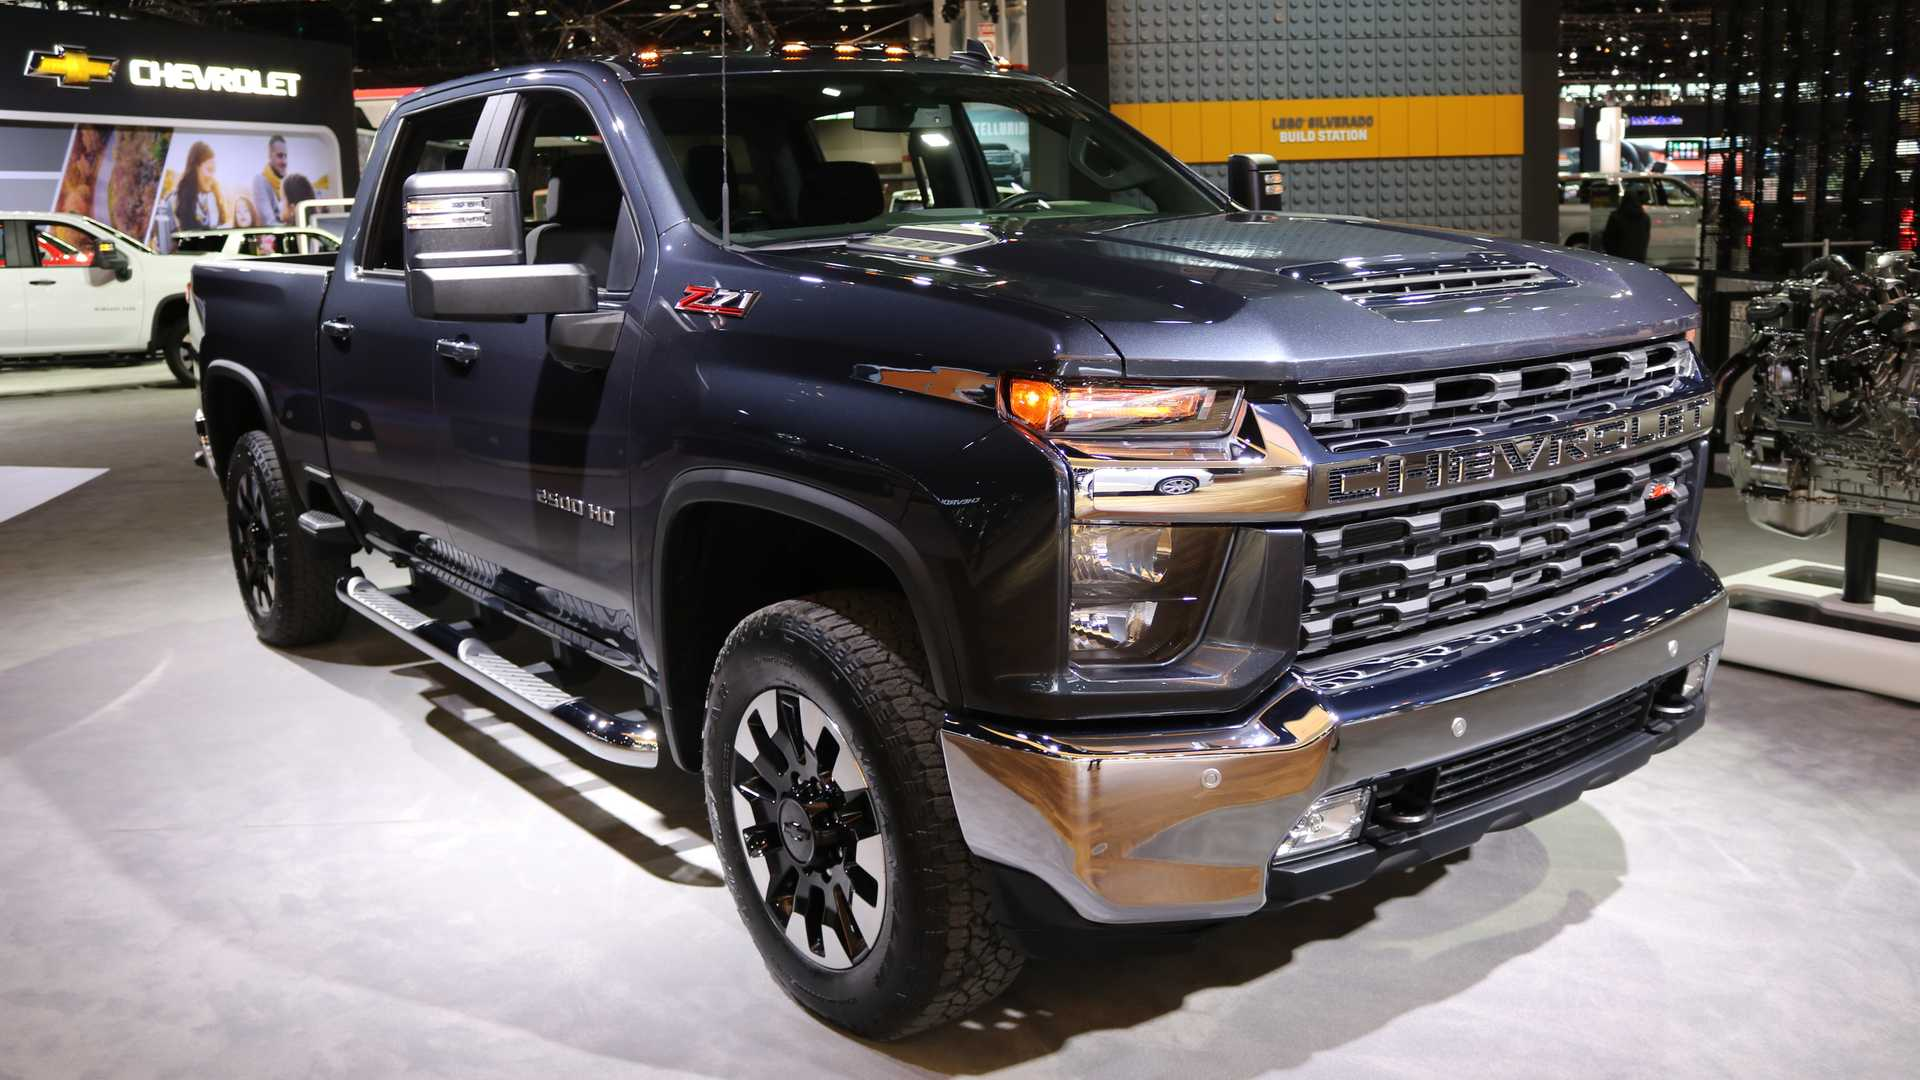 2020 Chevrolet Silverado Hd Has New V8 Can Tow 35 500 Pounds